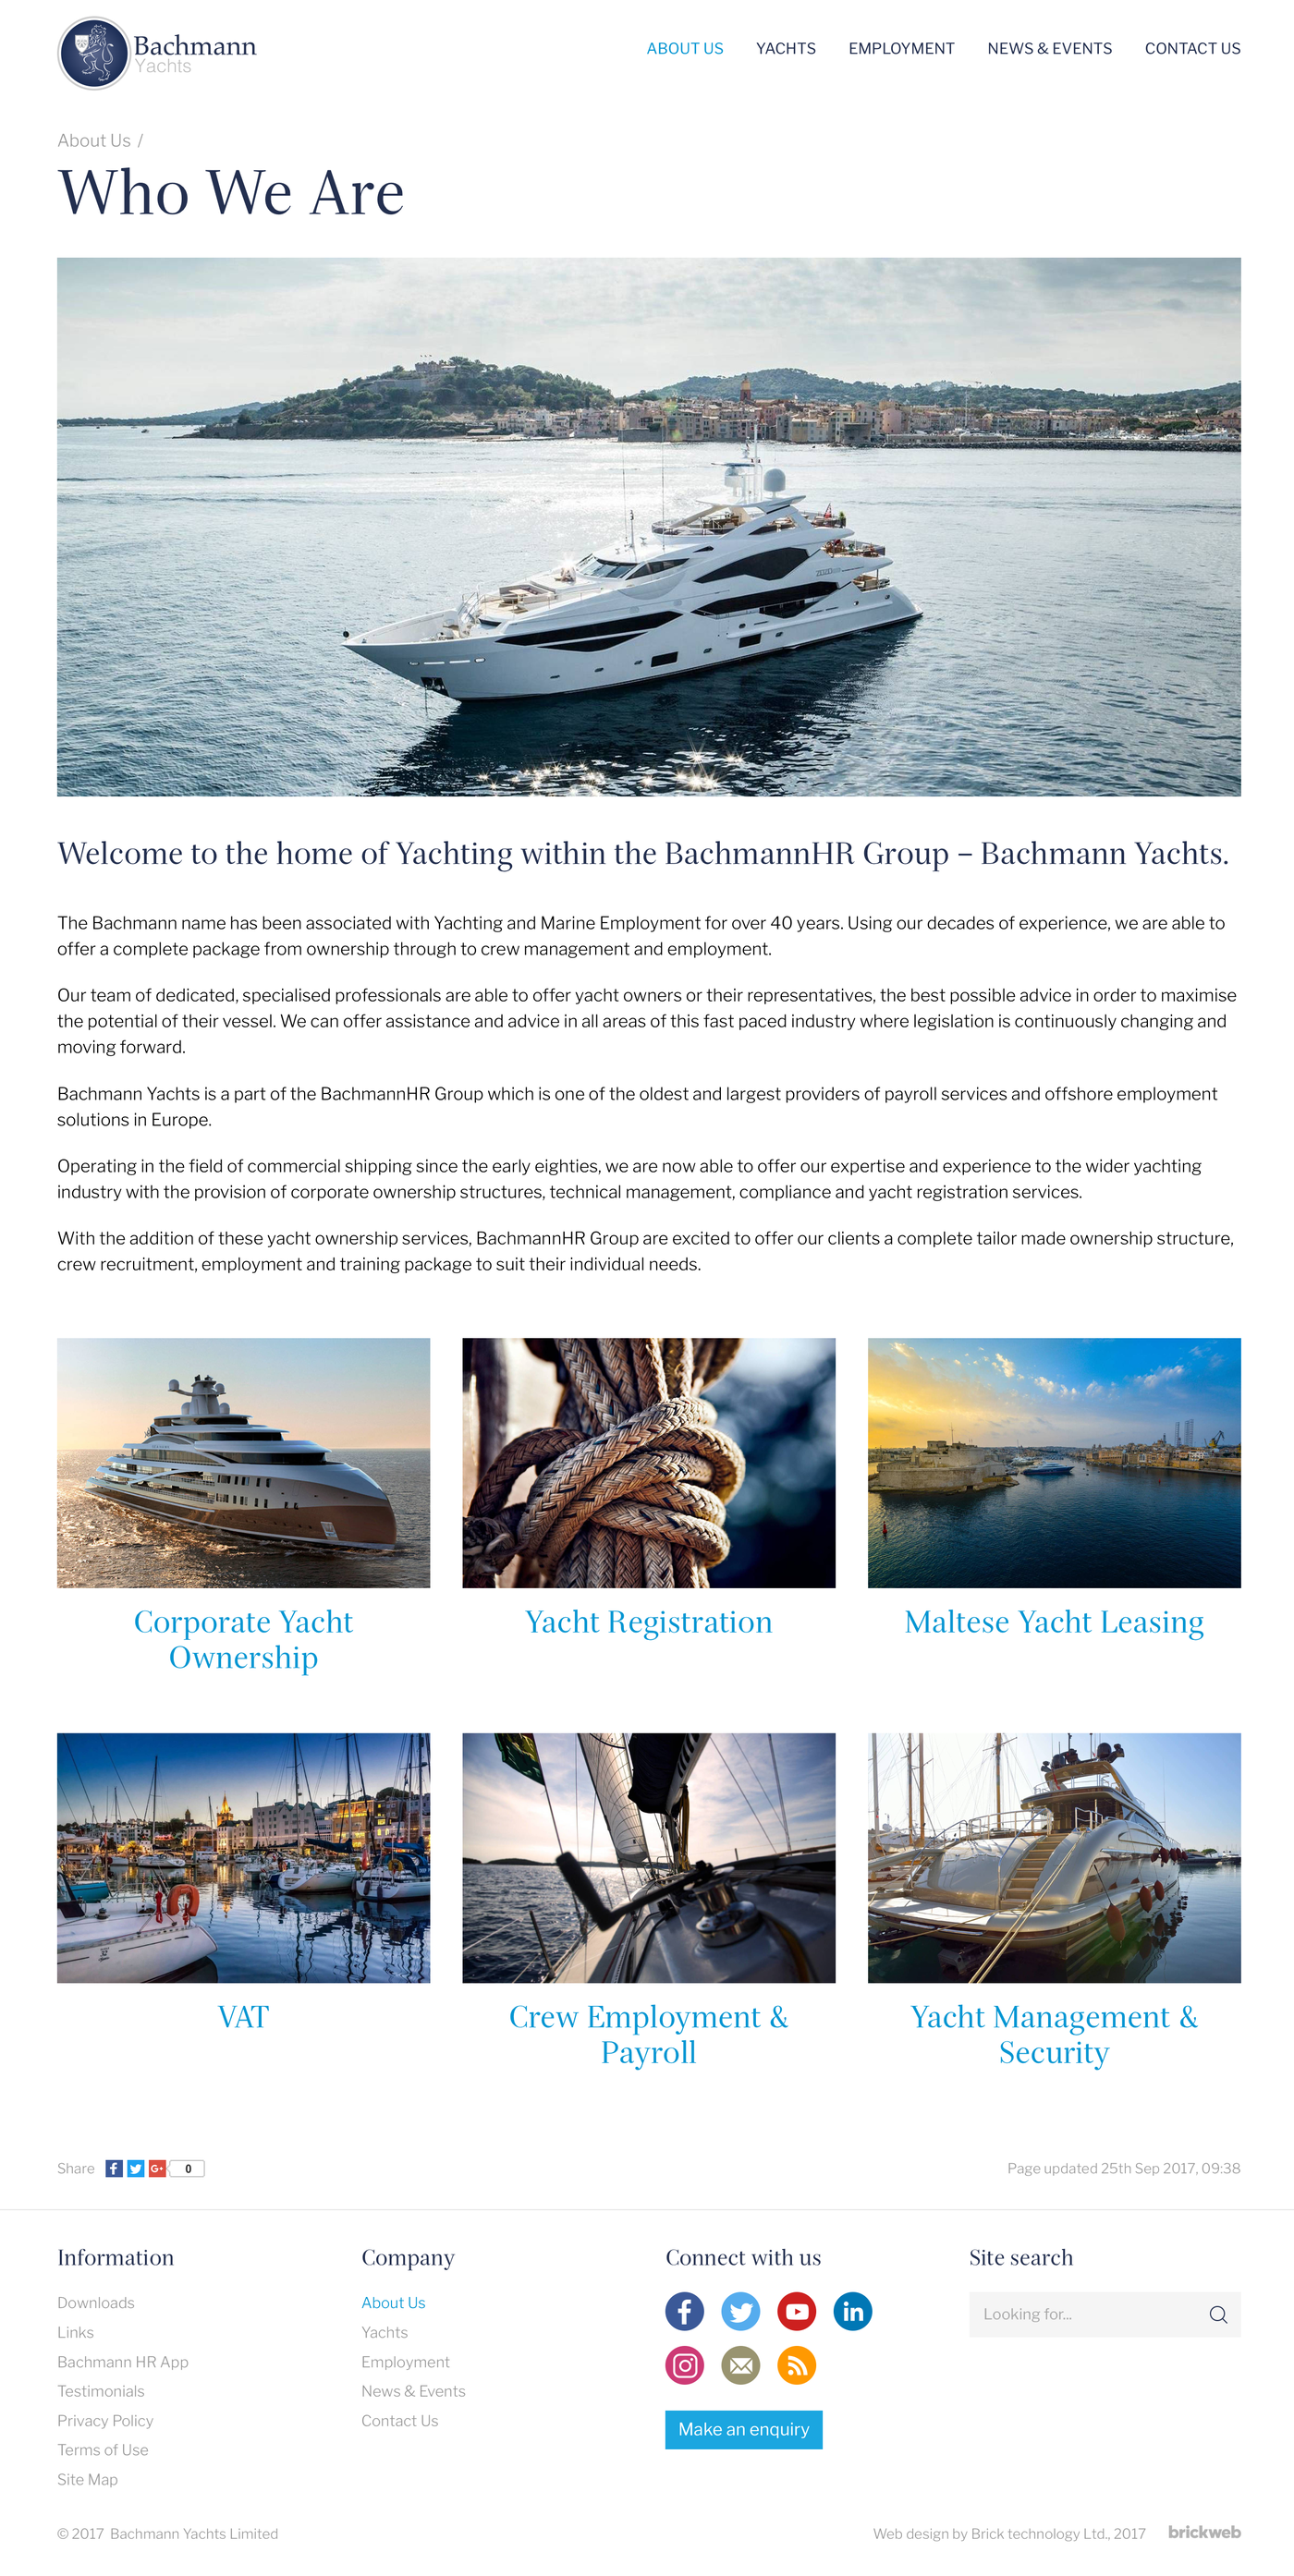 Bachmann Yachts Category